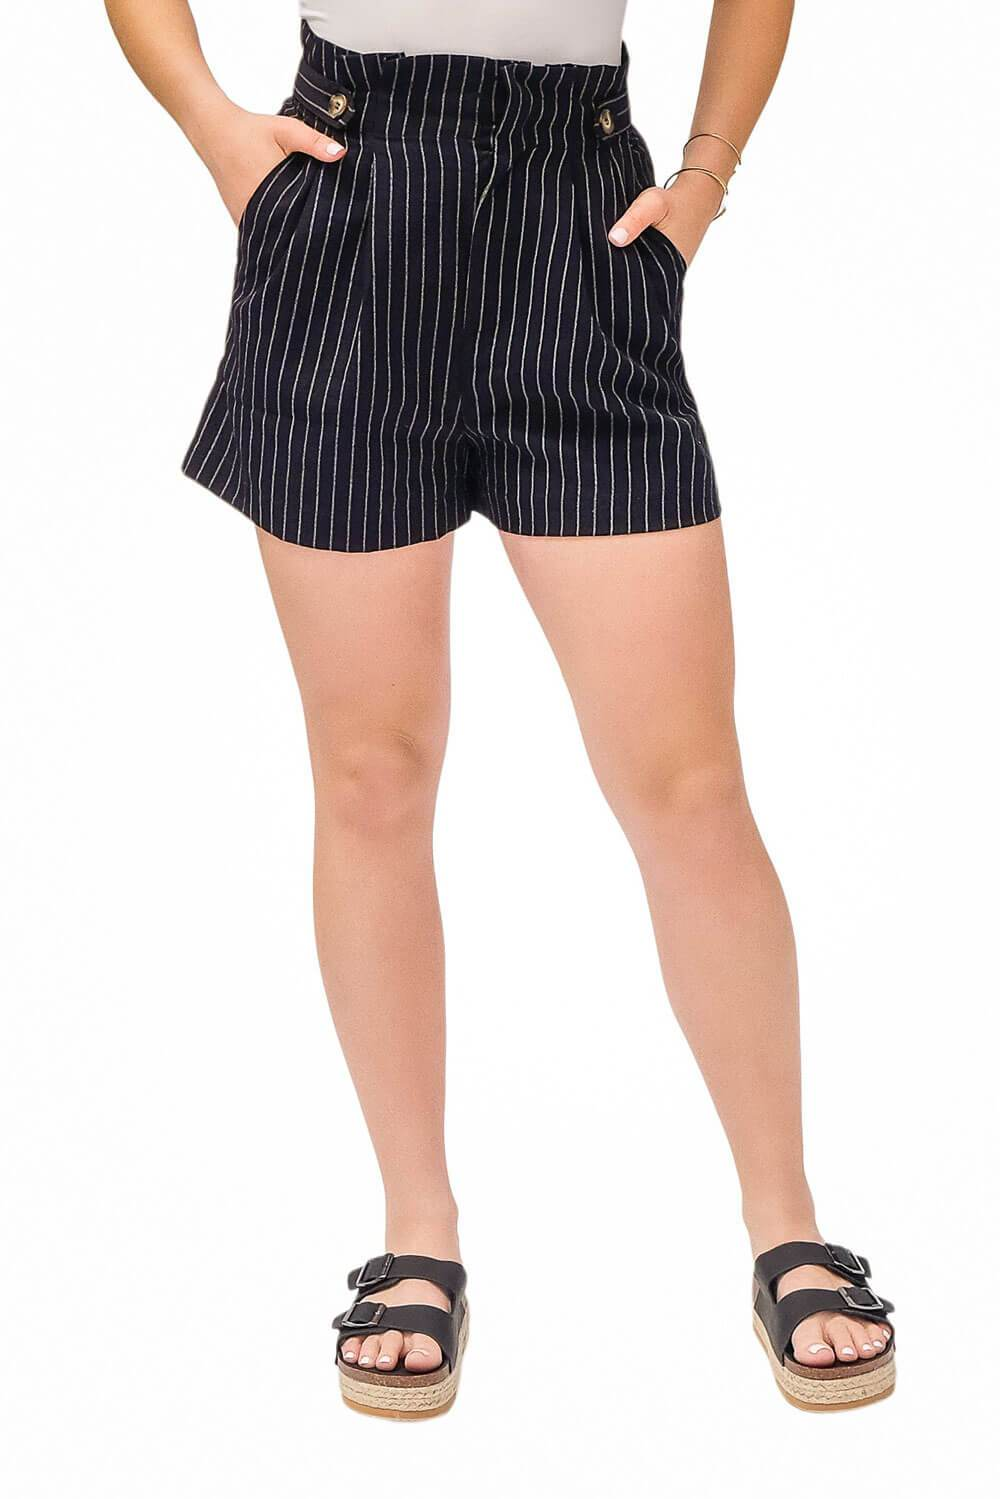 Striped Paperbag Shorts black - MILK MONEY